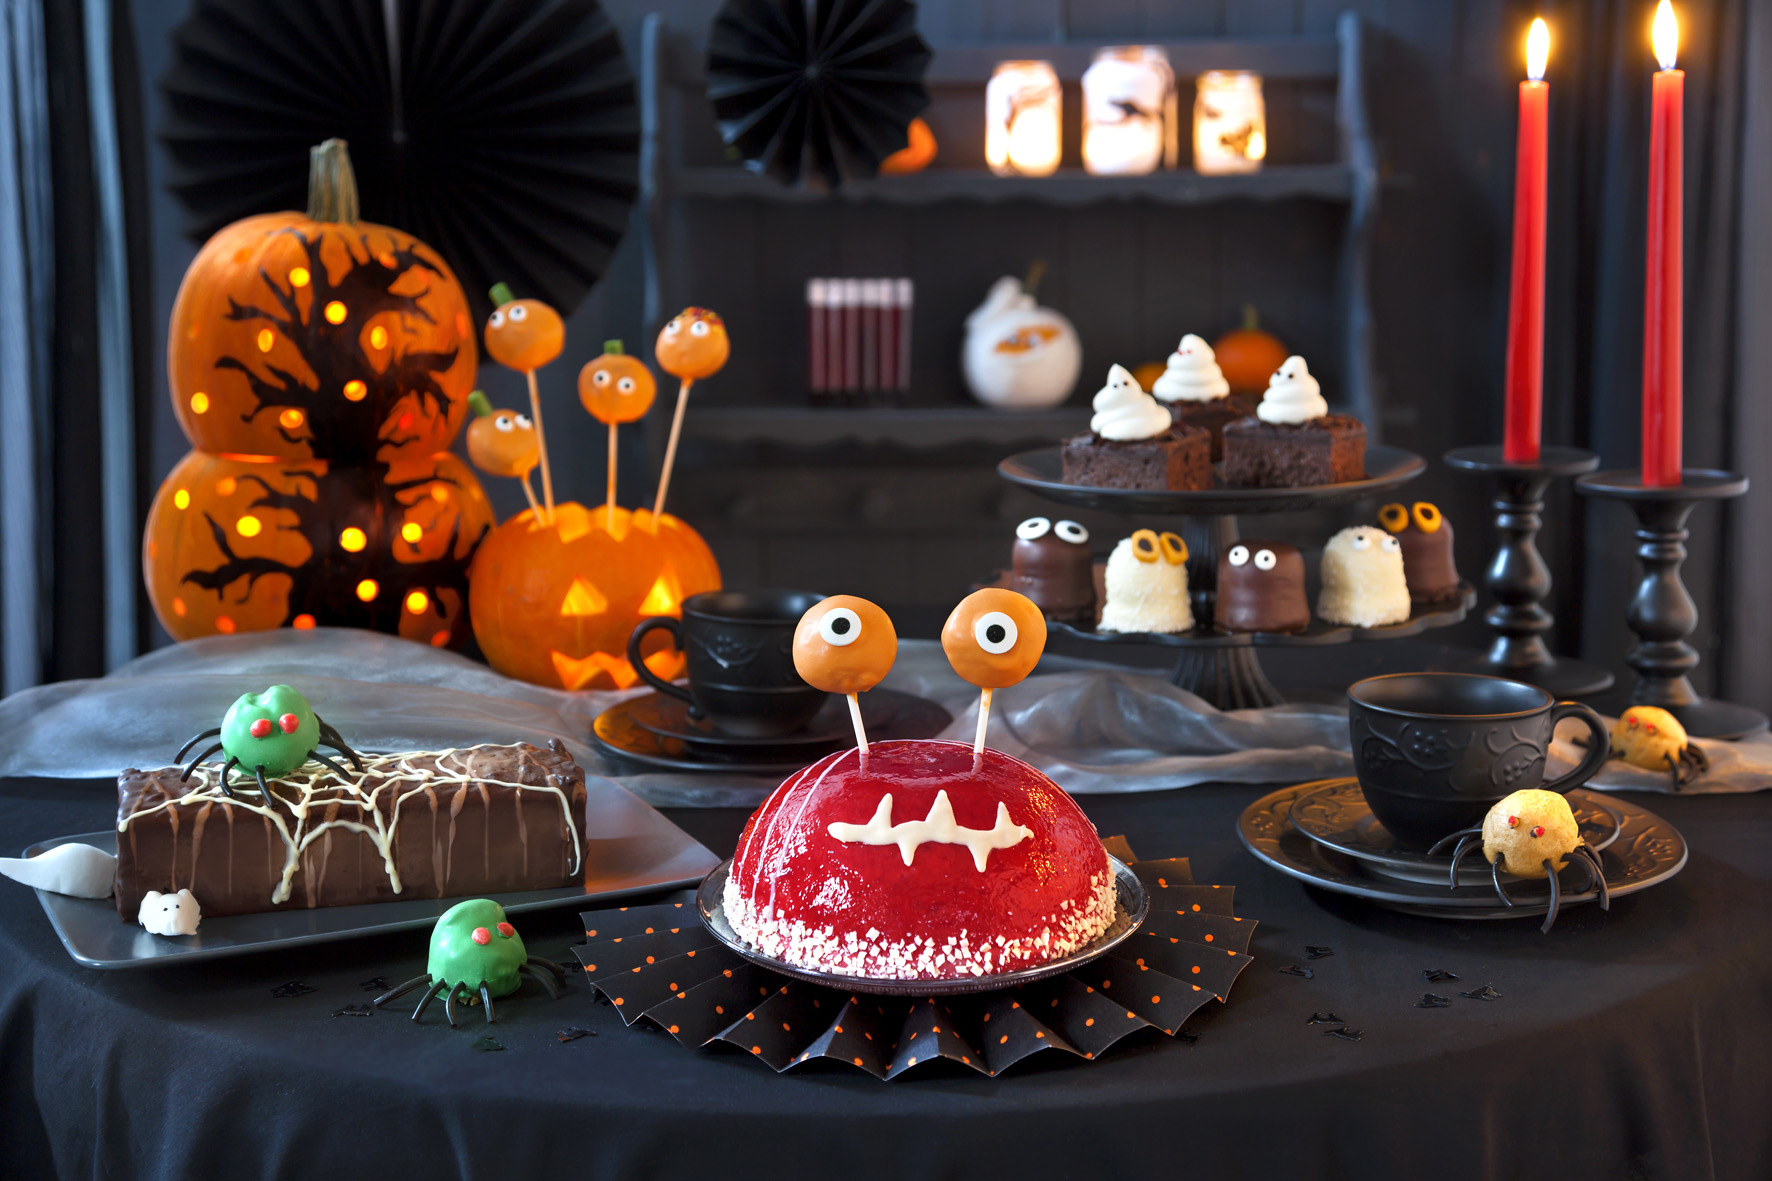 coole halloween kuchen beliebte rezepte f r kuchen und geb ck foto blog. Black Bedroom Furniture Sets. Home Design Ideas